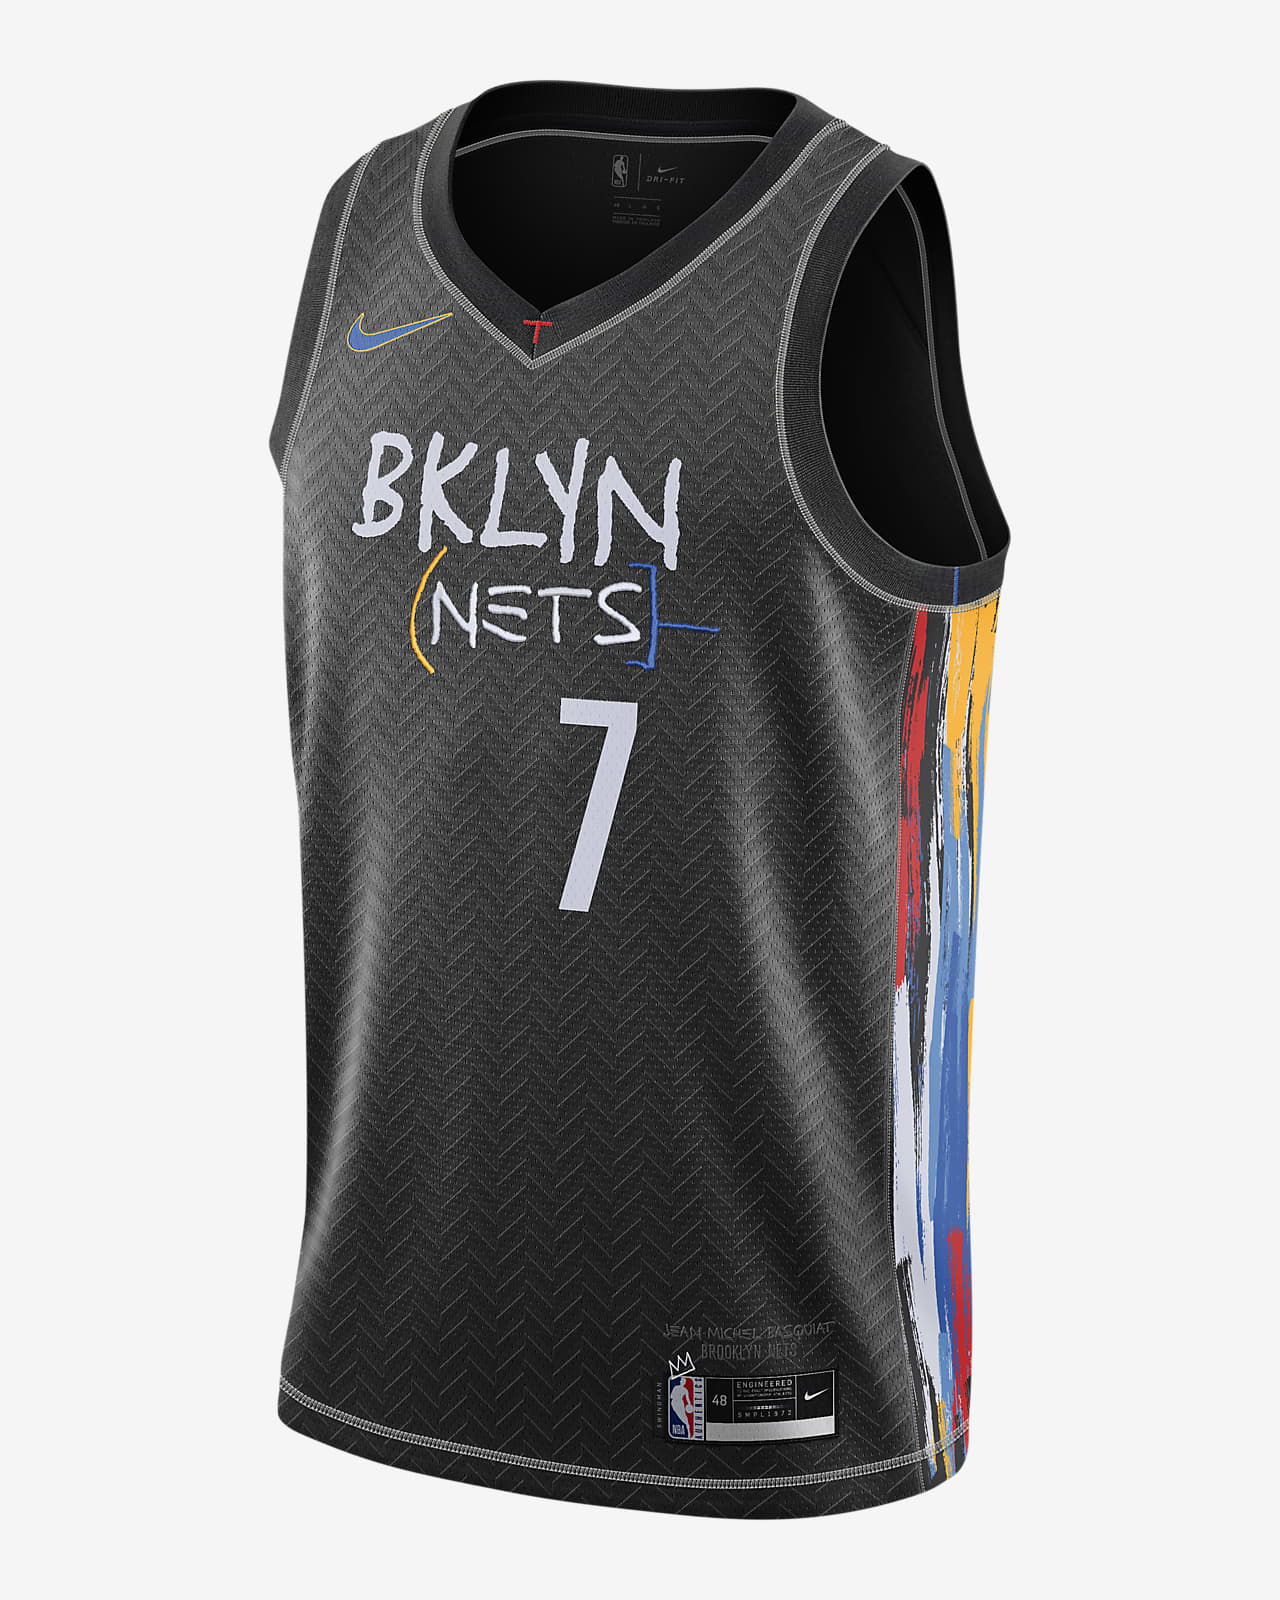 布鲁克林篮网队 City Edition Nike NBA Swingman Jersey 男子球衣